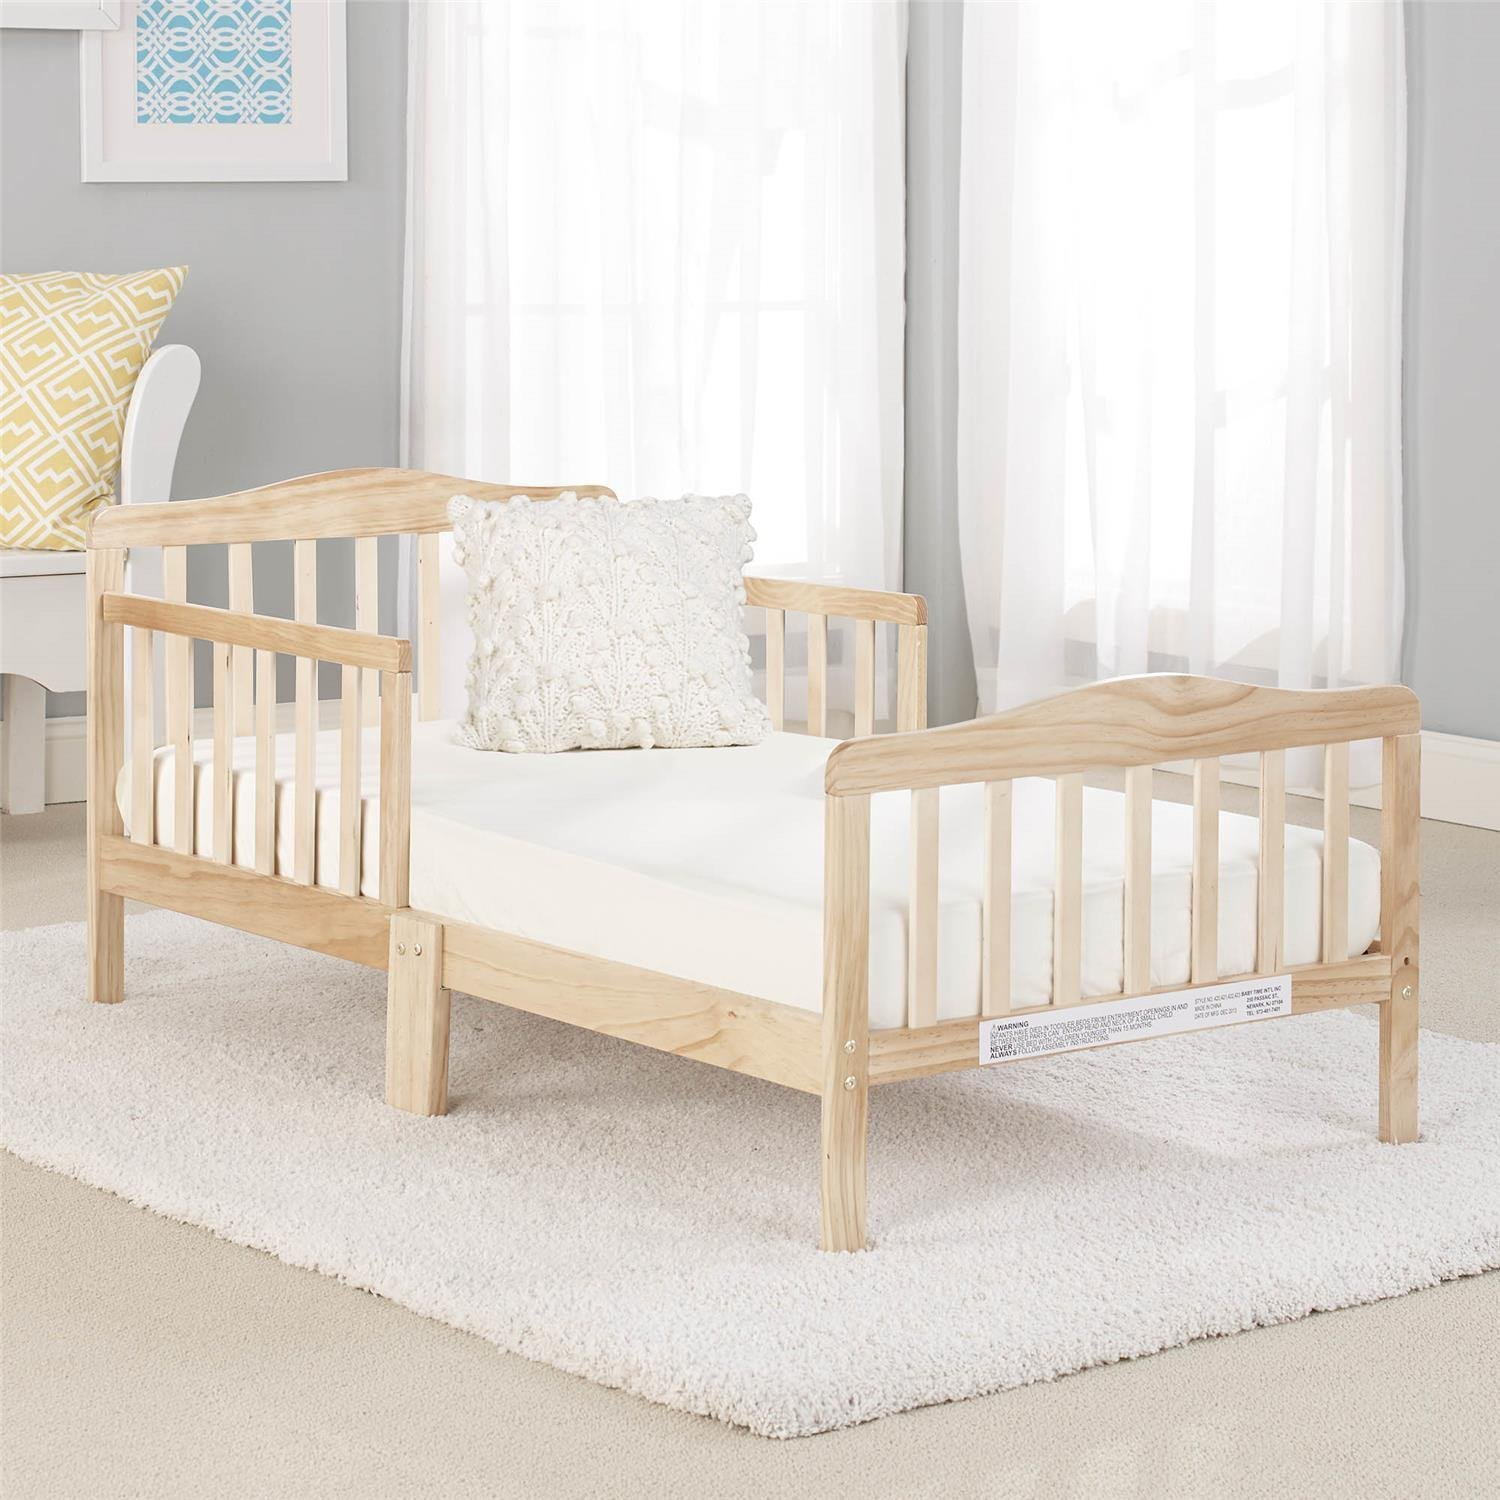 Big Oshi Contemporary Design Toddler & Kids Bed - Sturdy Wooden Frame for Extra Safety - Modern Slat Design - Great for Boys and Girls - Full Bed Frame With Headboard, in Natural